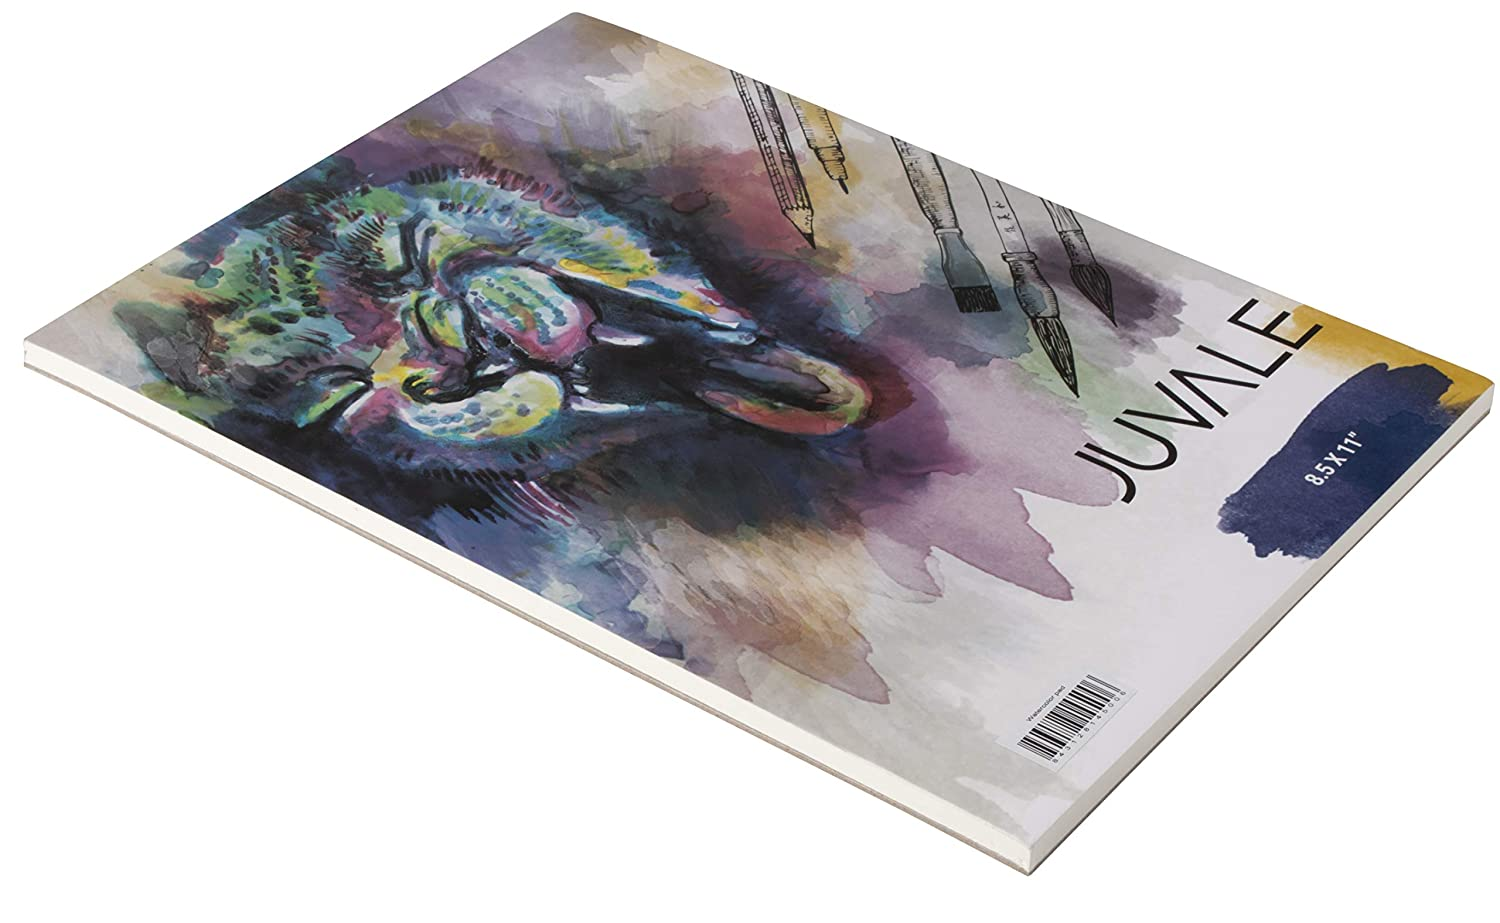 Watercolor Book 8.5 x 11 Inches Painting Paper Wet Media Student 3-Pack A4 Watercolor Paper Art Pad for Acrylic for Artist Hobby Painter 20 Sheet Watercolor Watercolor Pad 5.3 OZ Kid